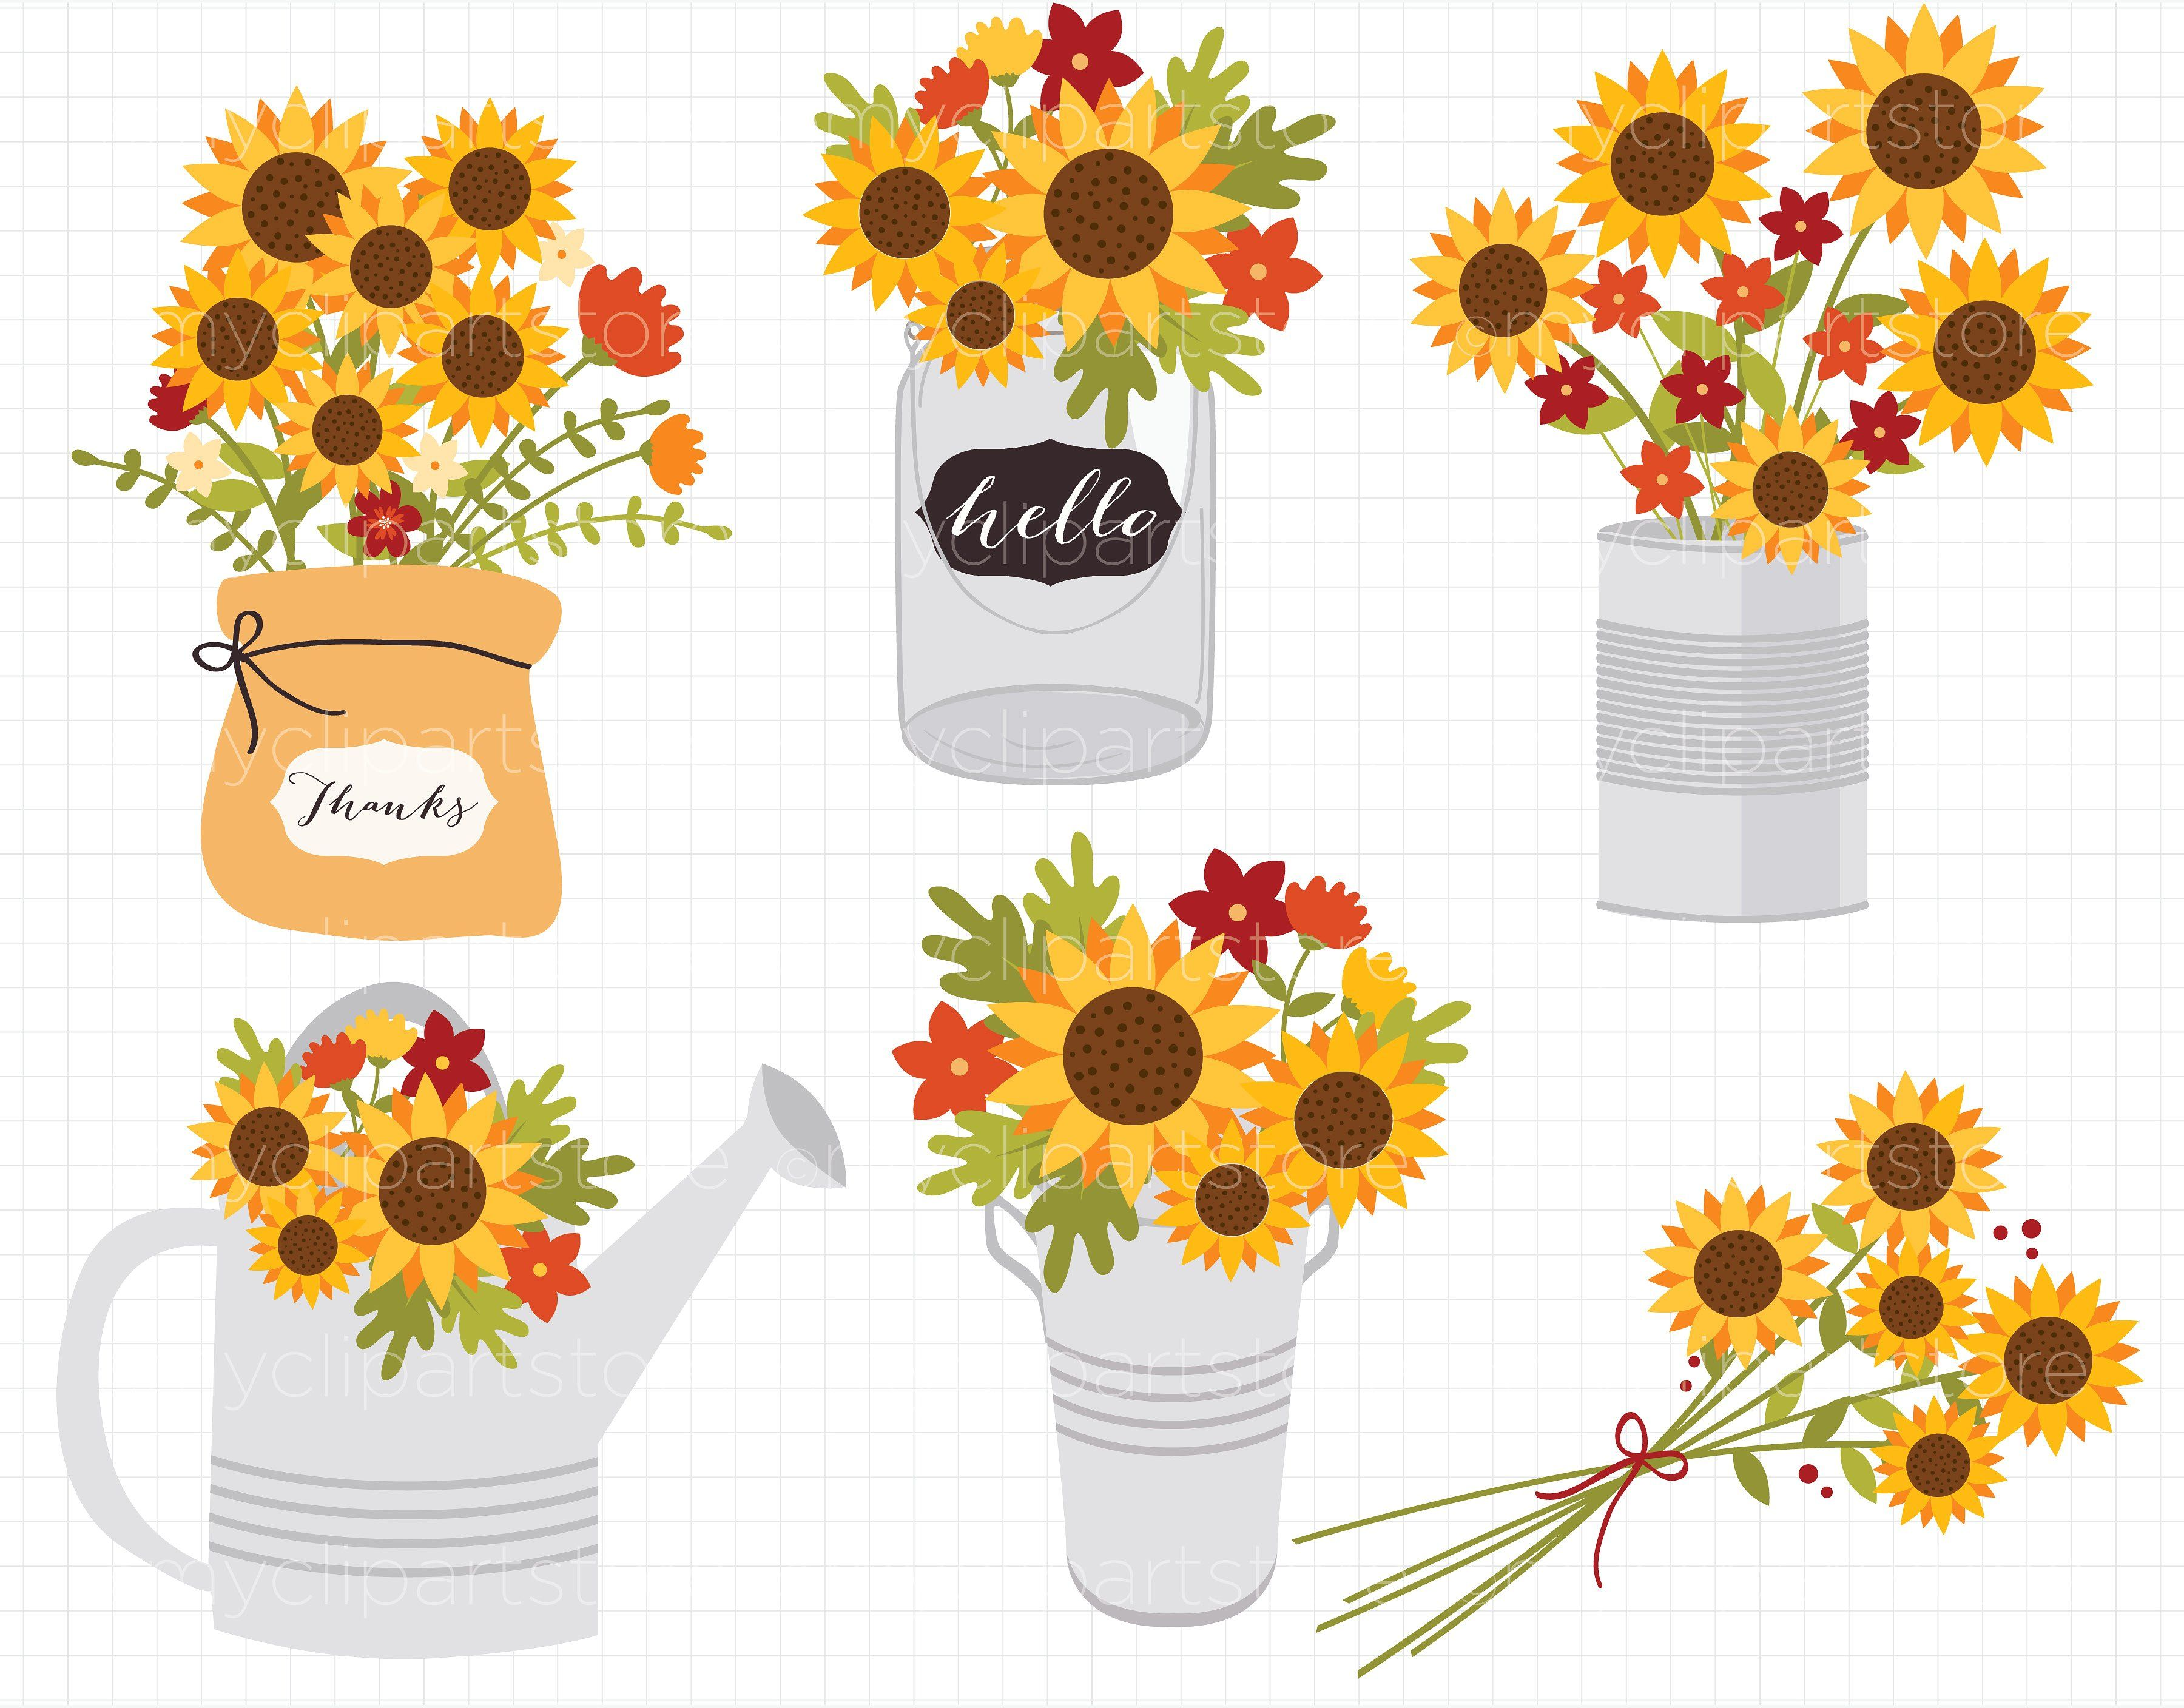 jpg royalty free library Sunflowers clipart thanksgiving. Fall flowers autumn